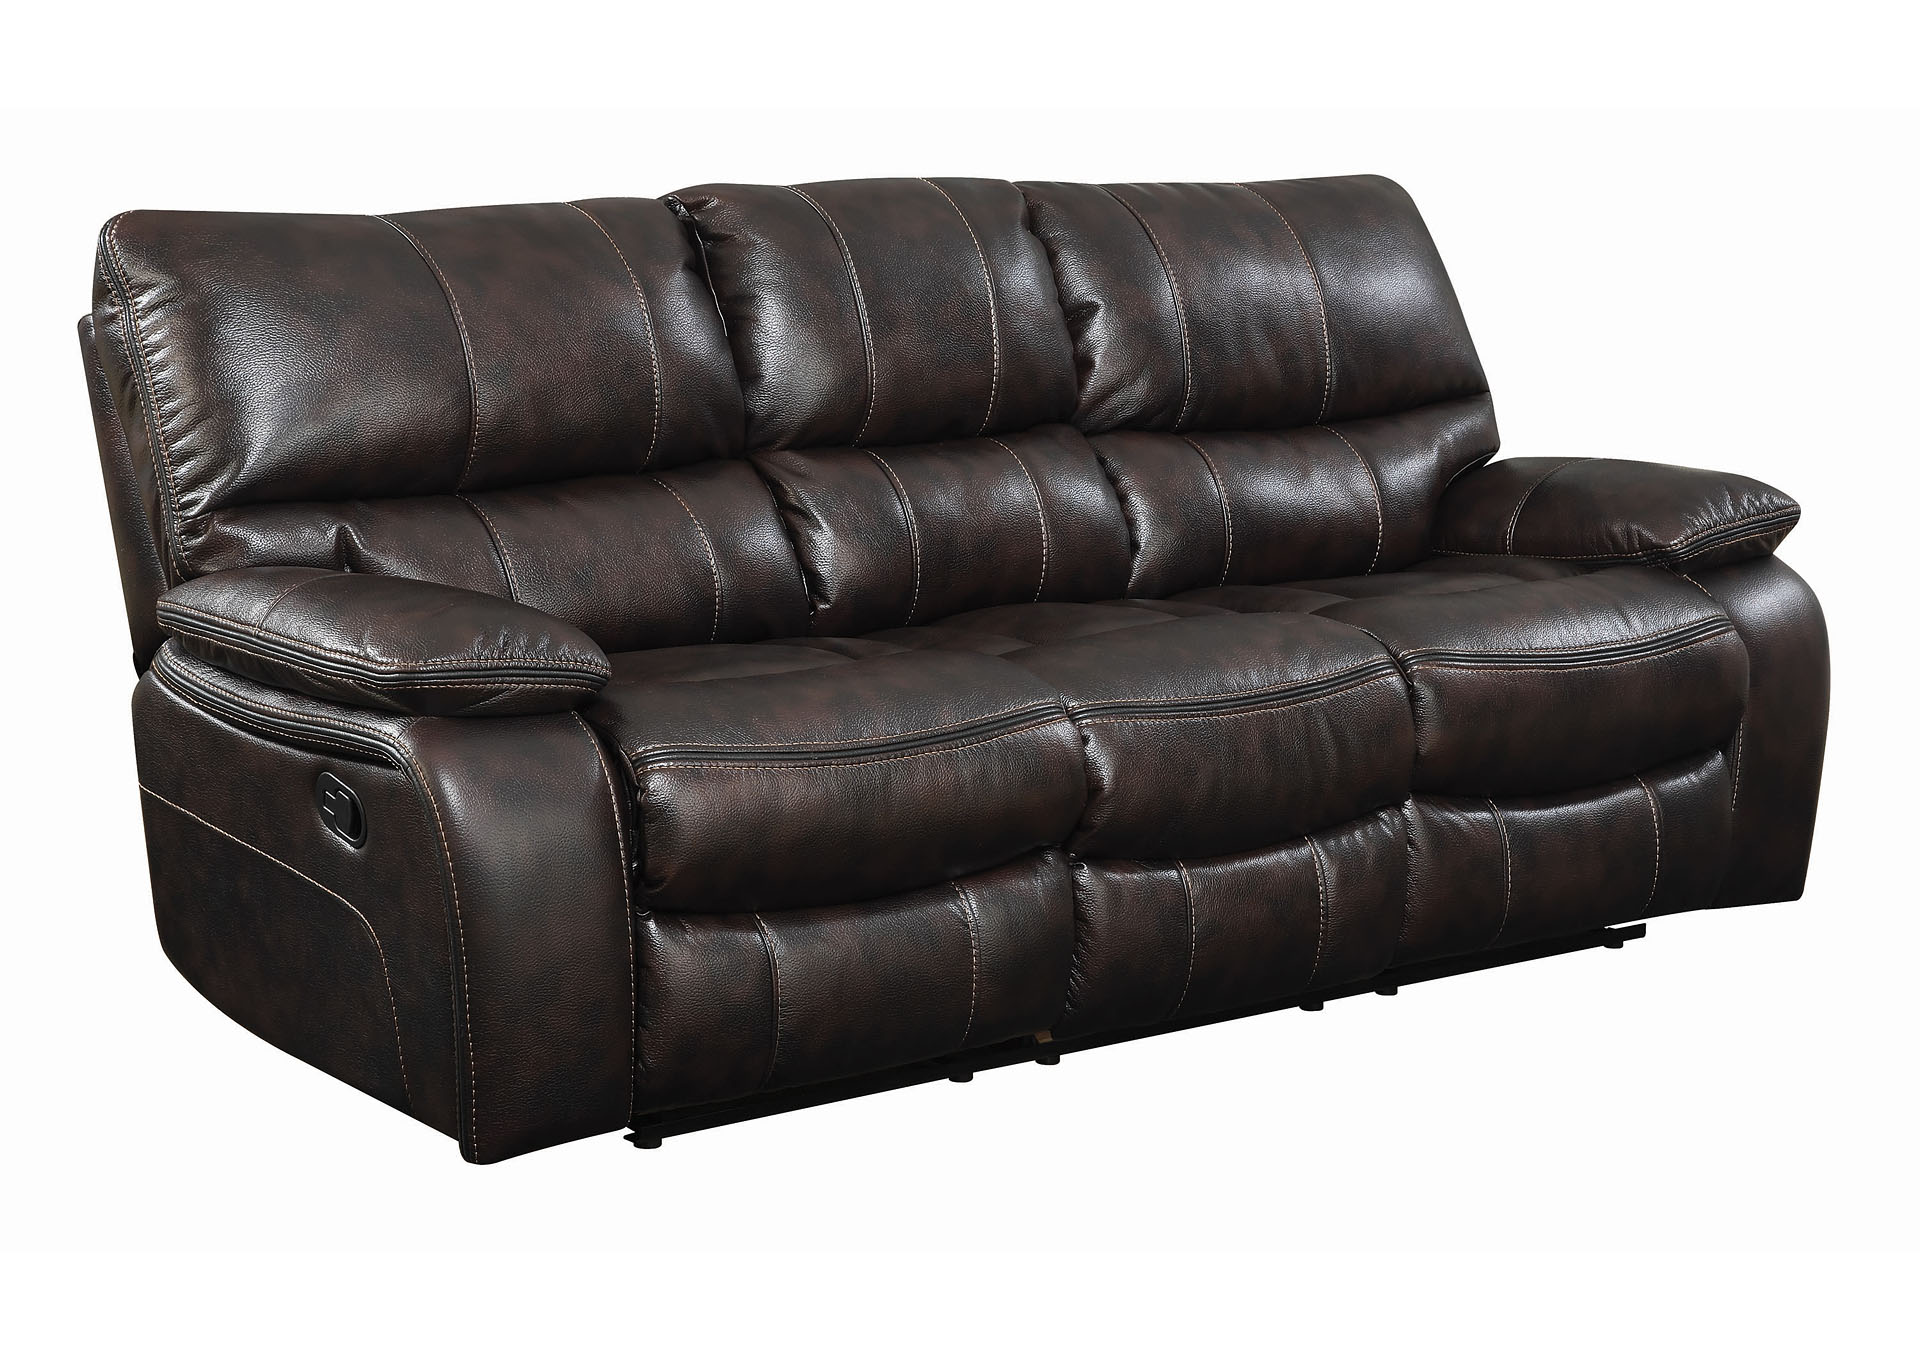 Eerie Black Willemse Chocolate Reclining Sofa W/ Drop Down Table,Coaster Furniture